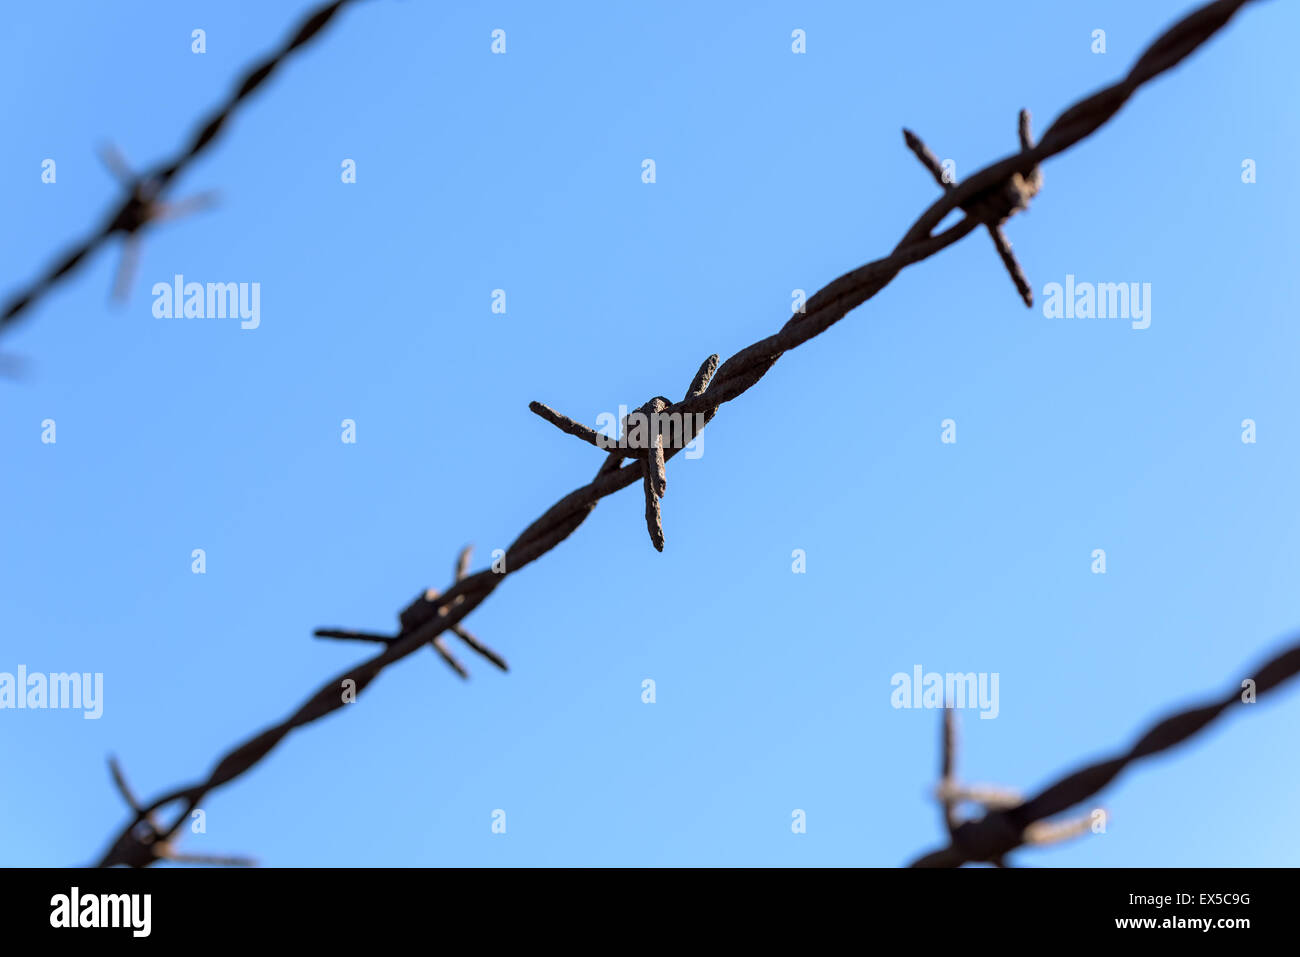 Prison Rusty Barbed Wire On Blue Sky - Stock Image